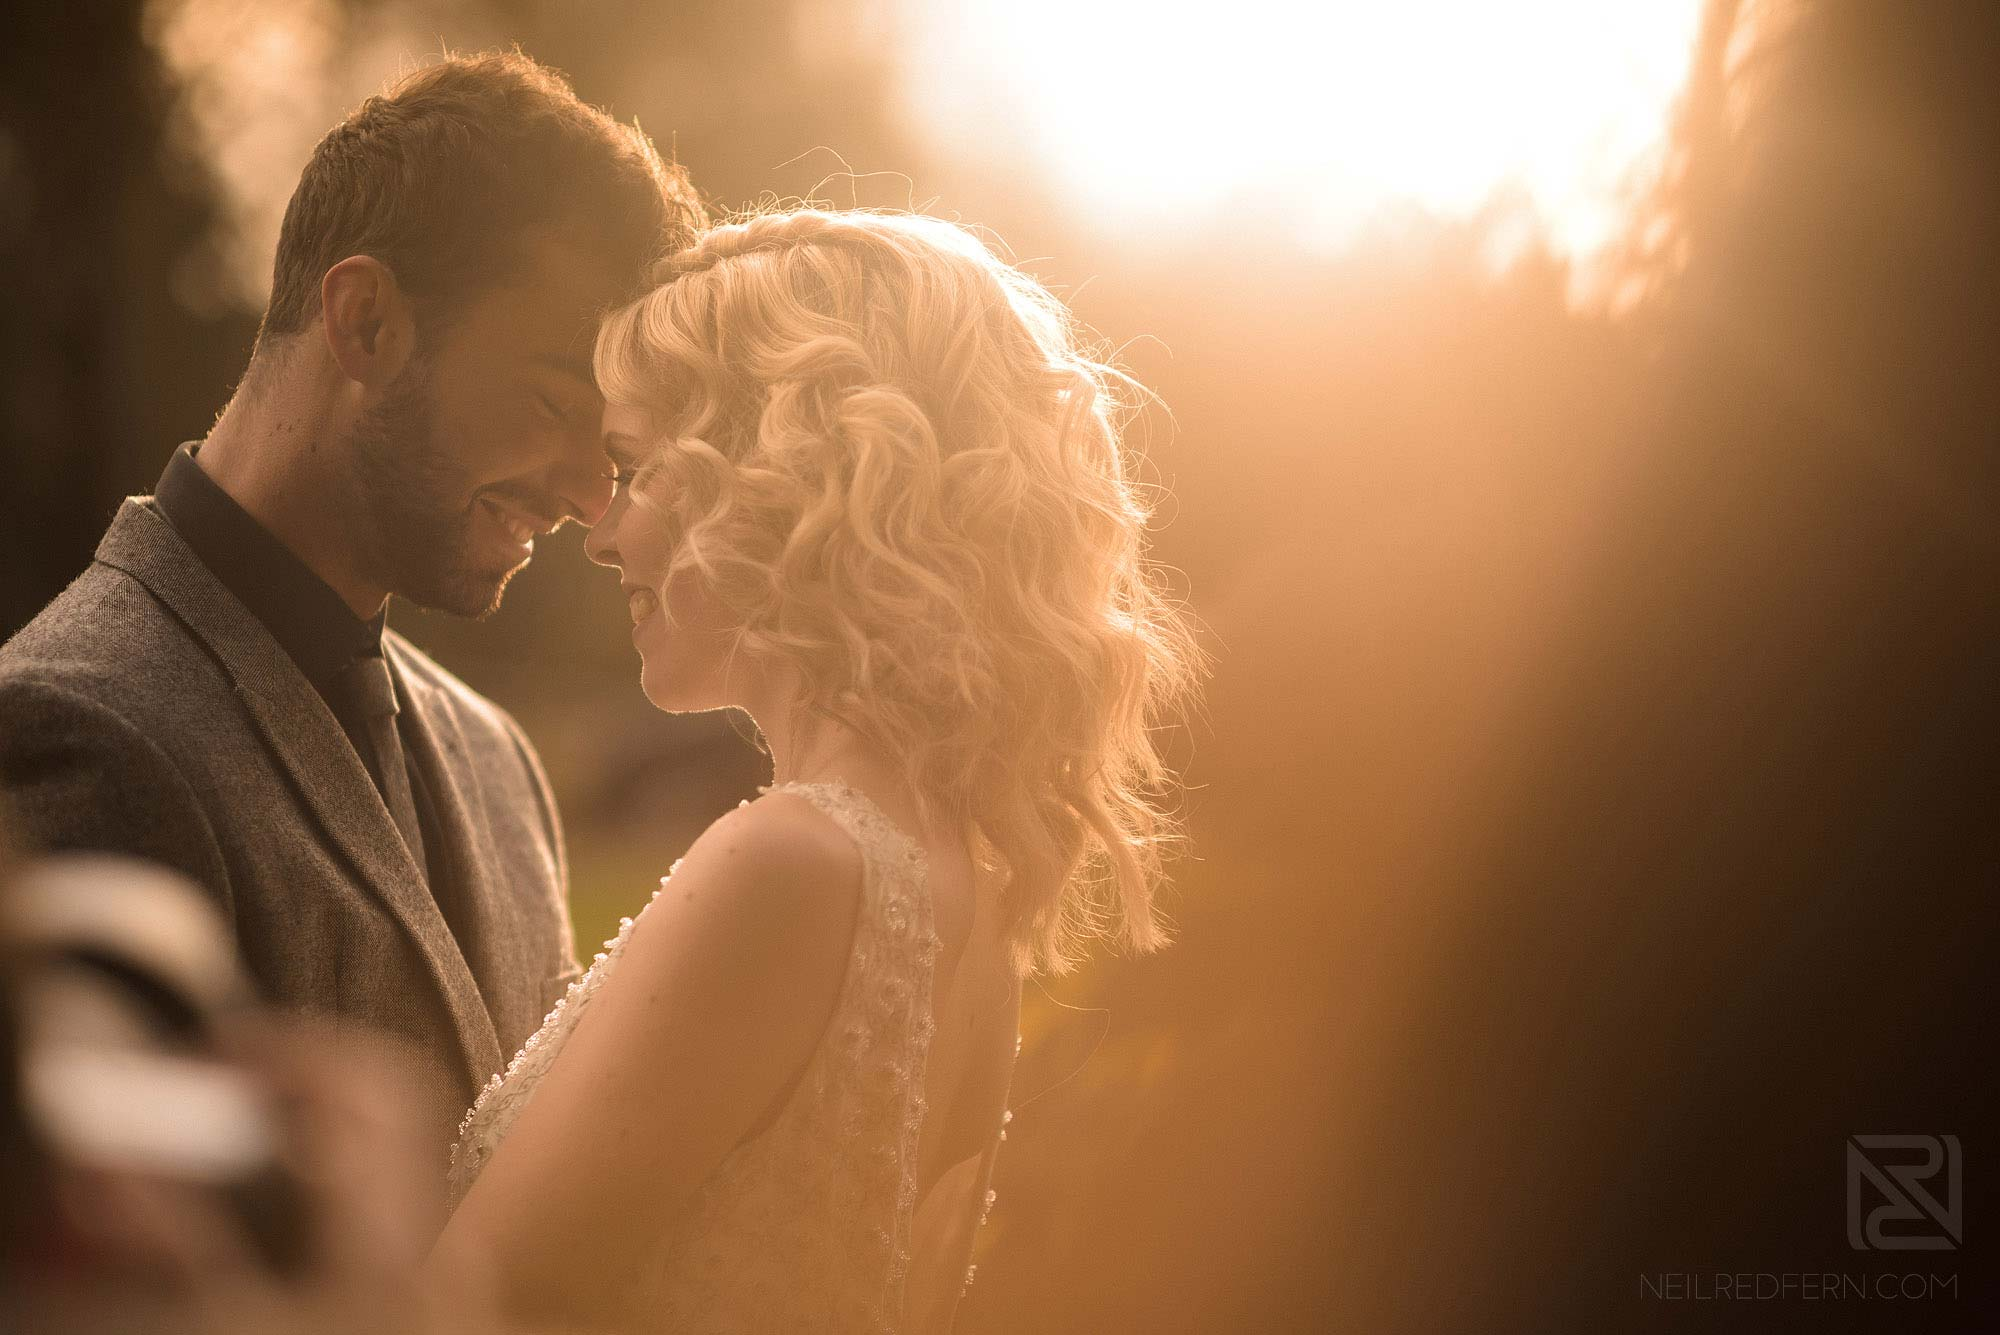 photograph of bride and groom at sunset